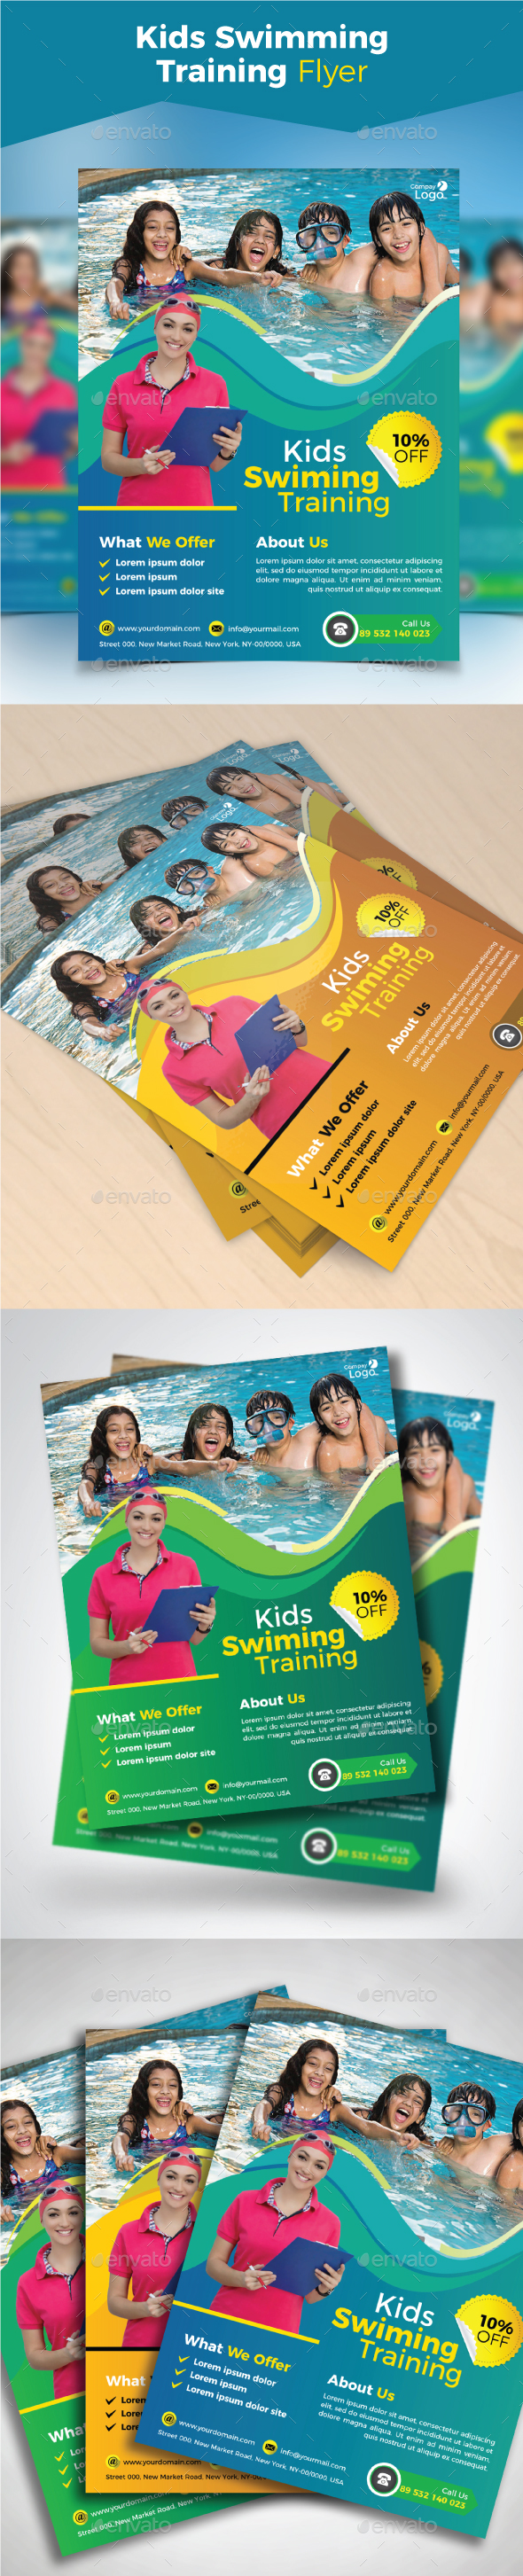 Kids Swimming Training Flyer - Sports Events